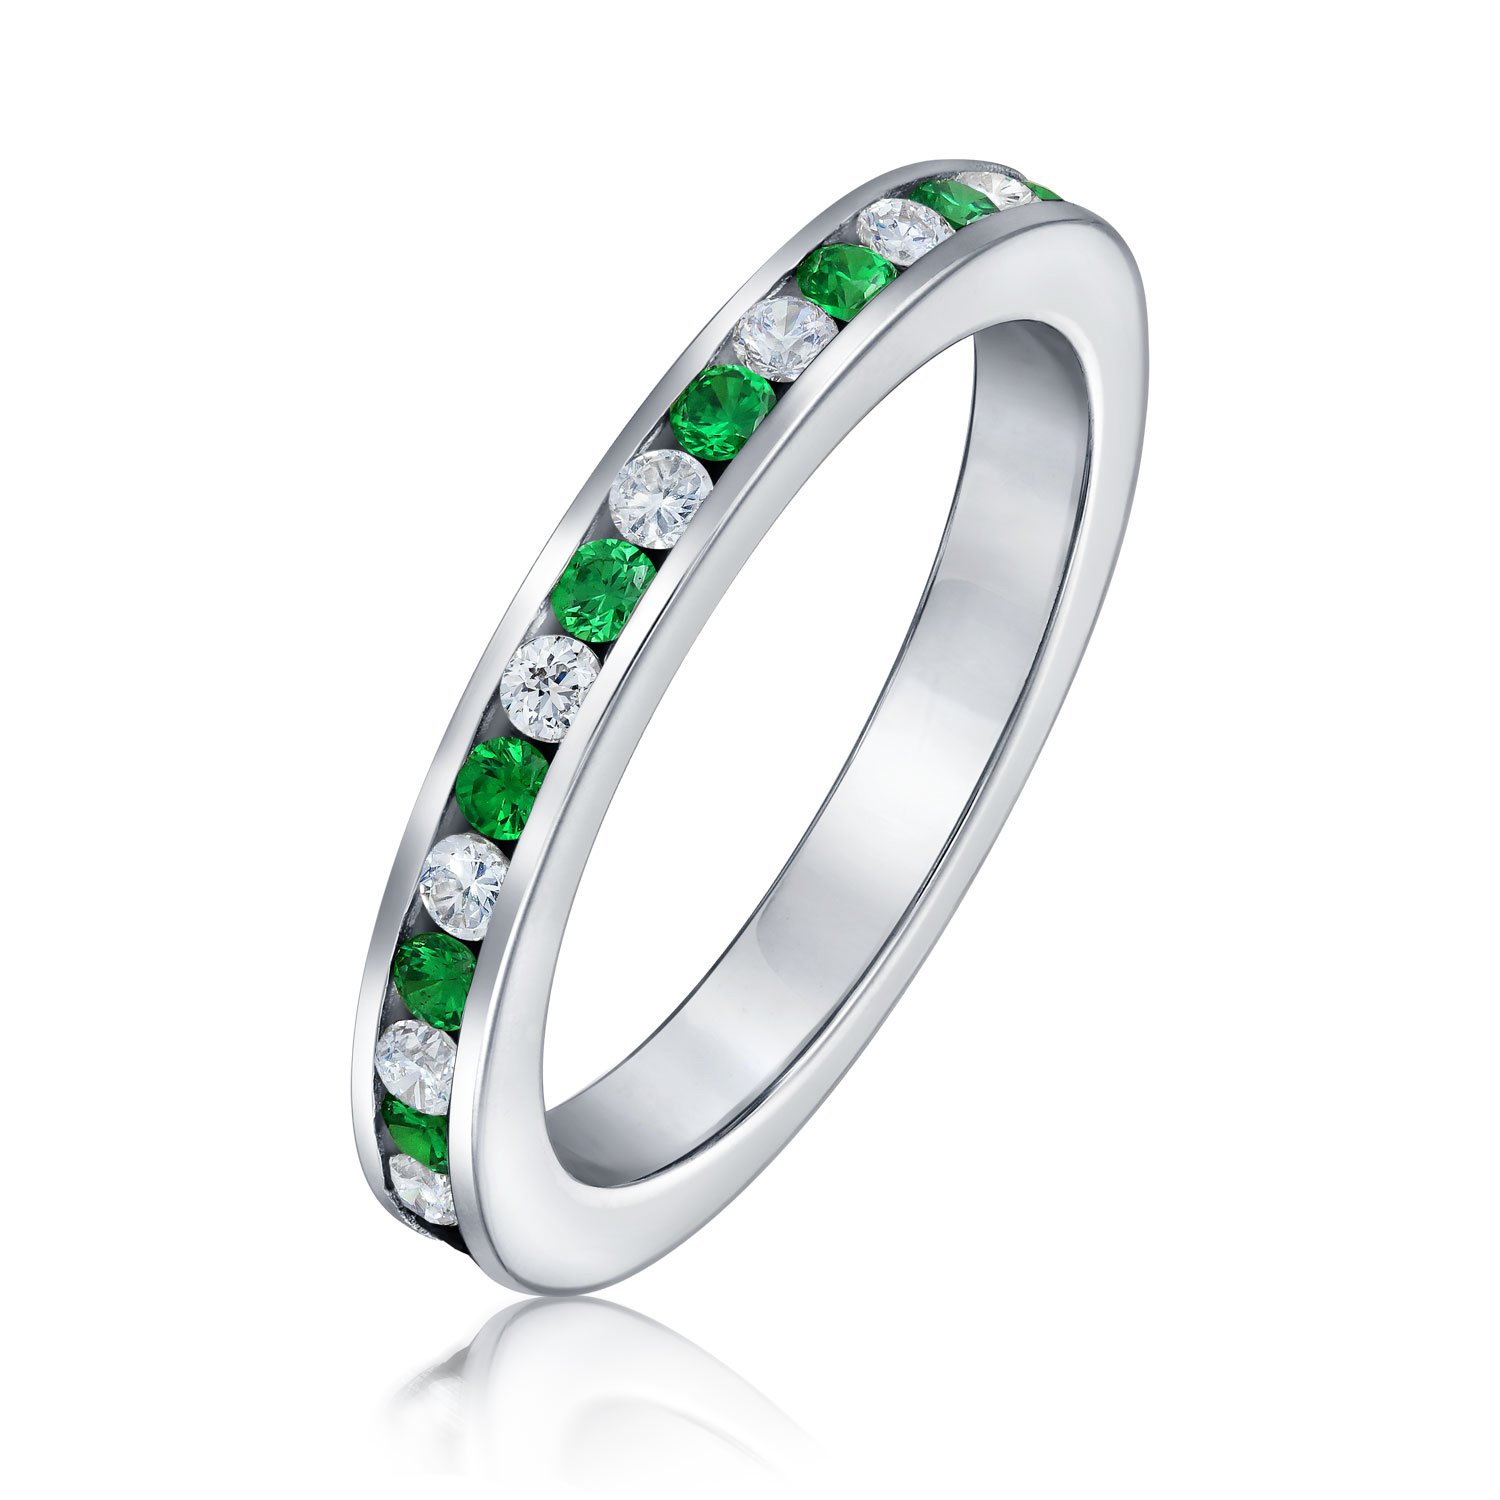 Cubic Zirconia Stackable CZ Channel Set Eternity Band Ring Simulated Gemstone 925 Sterling Silver 12 Birth Month Colors